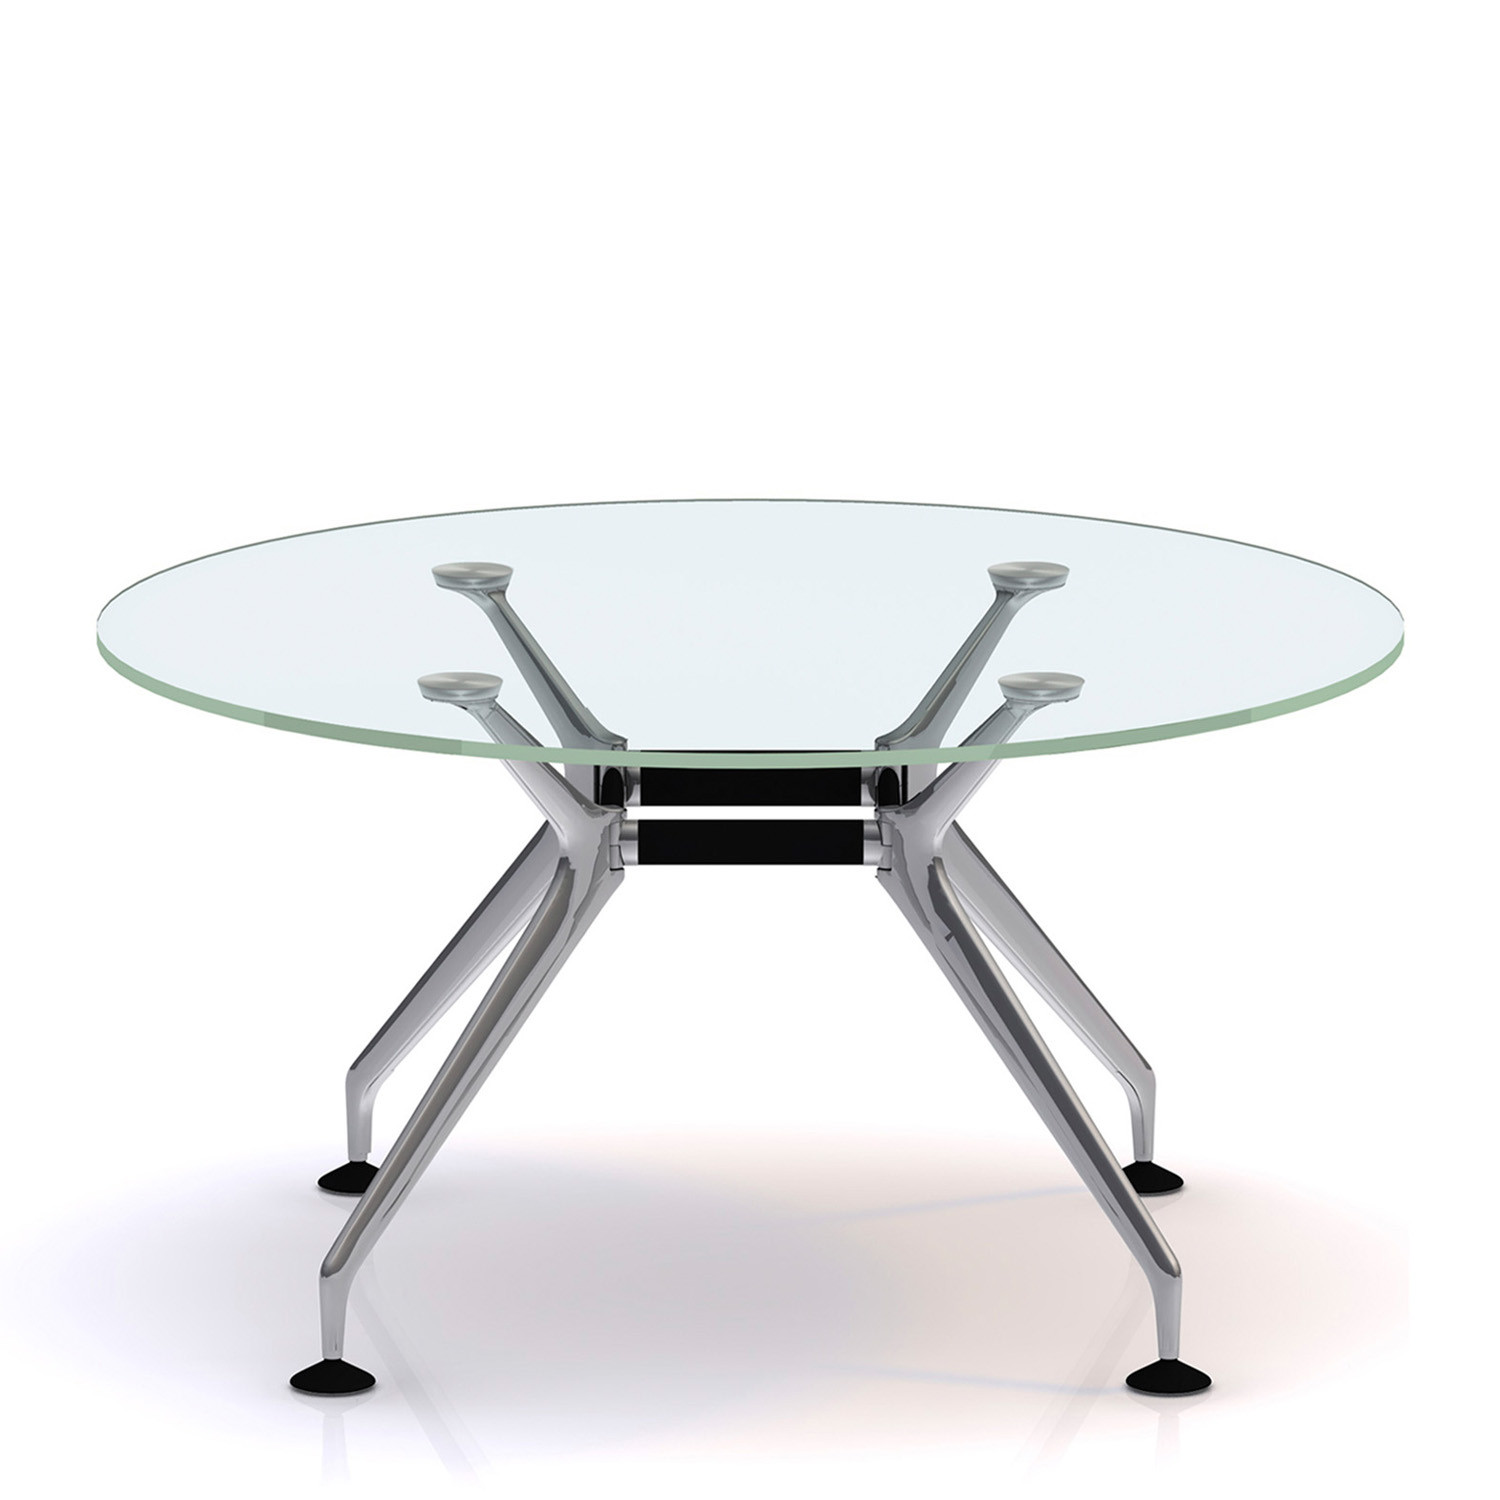 Lano Round Glass Meeting Table by Orangebox